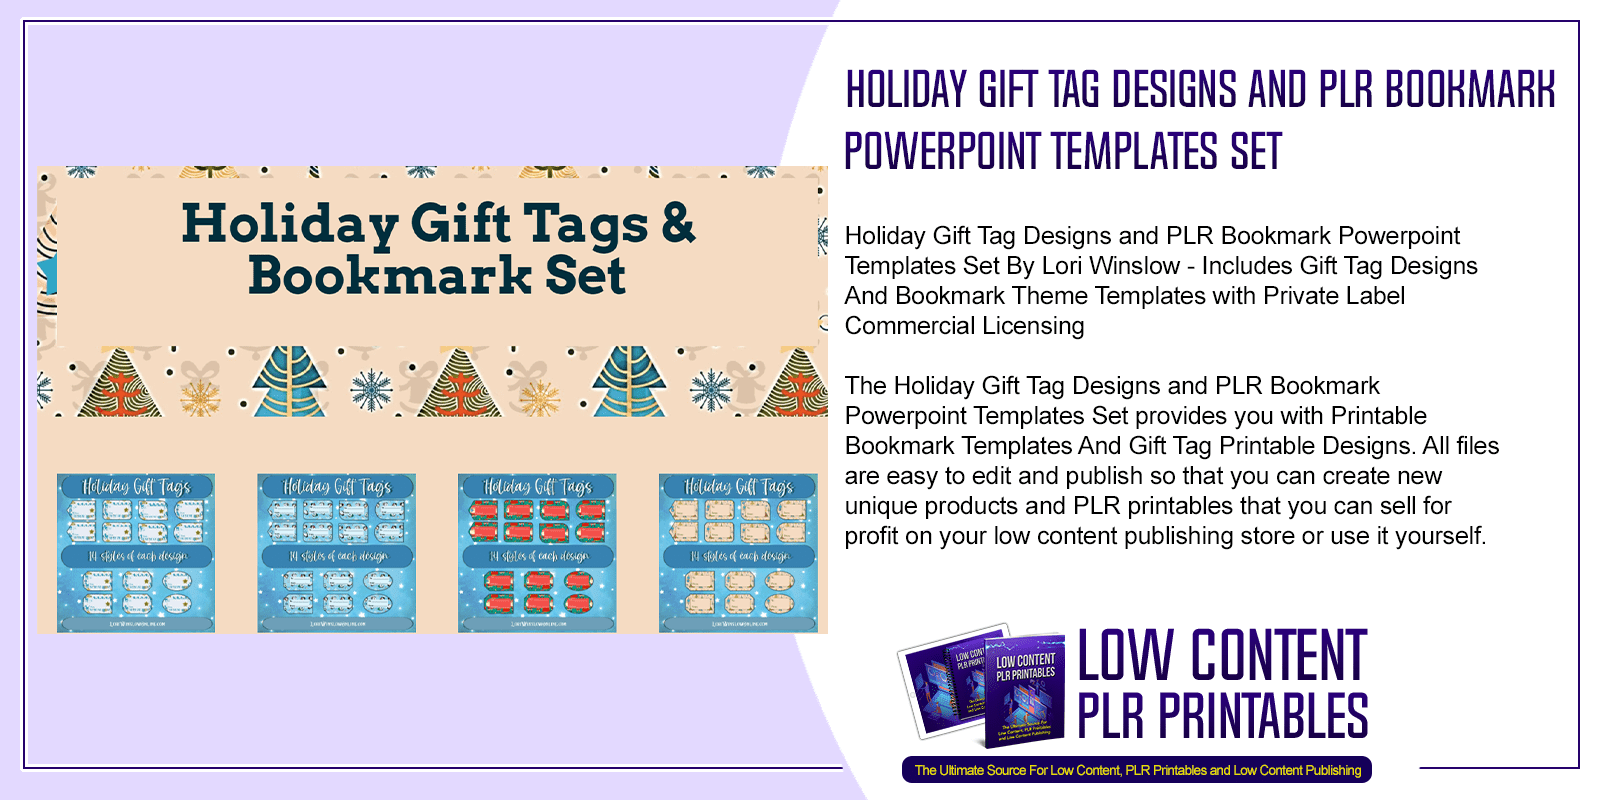 Holiday Gift Tag Designs and PLR Bookmark Powerpoint Templates Set